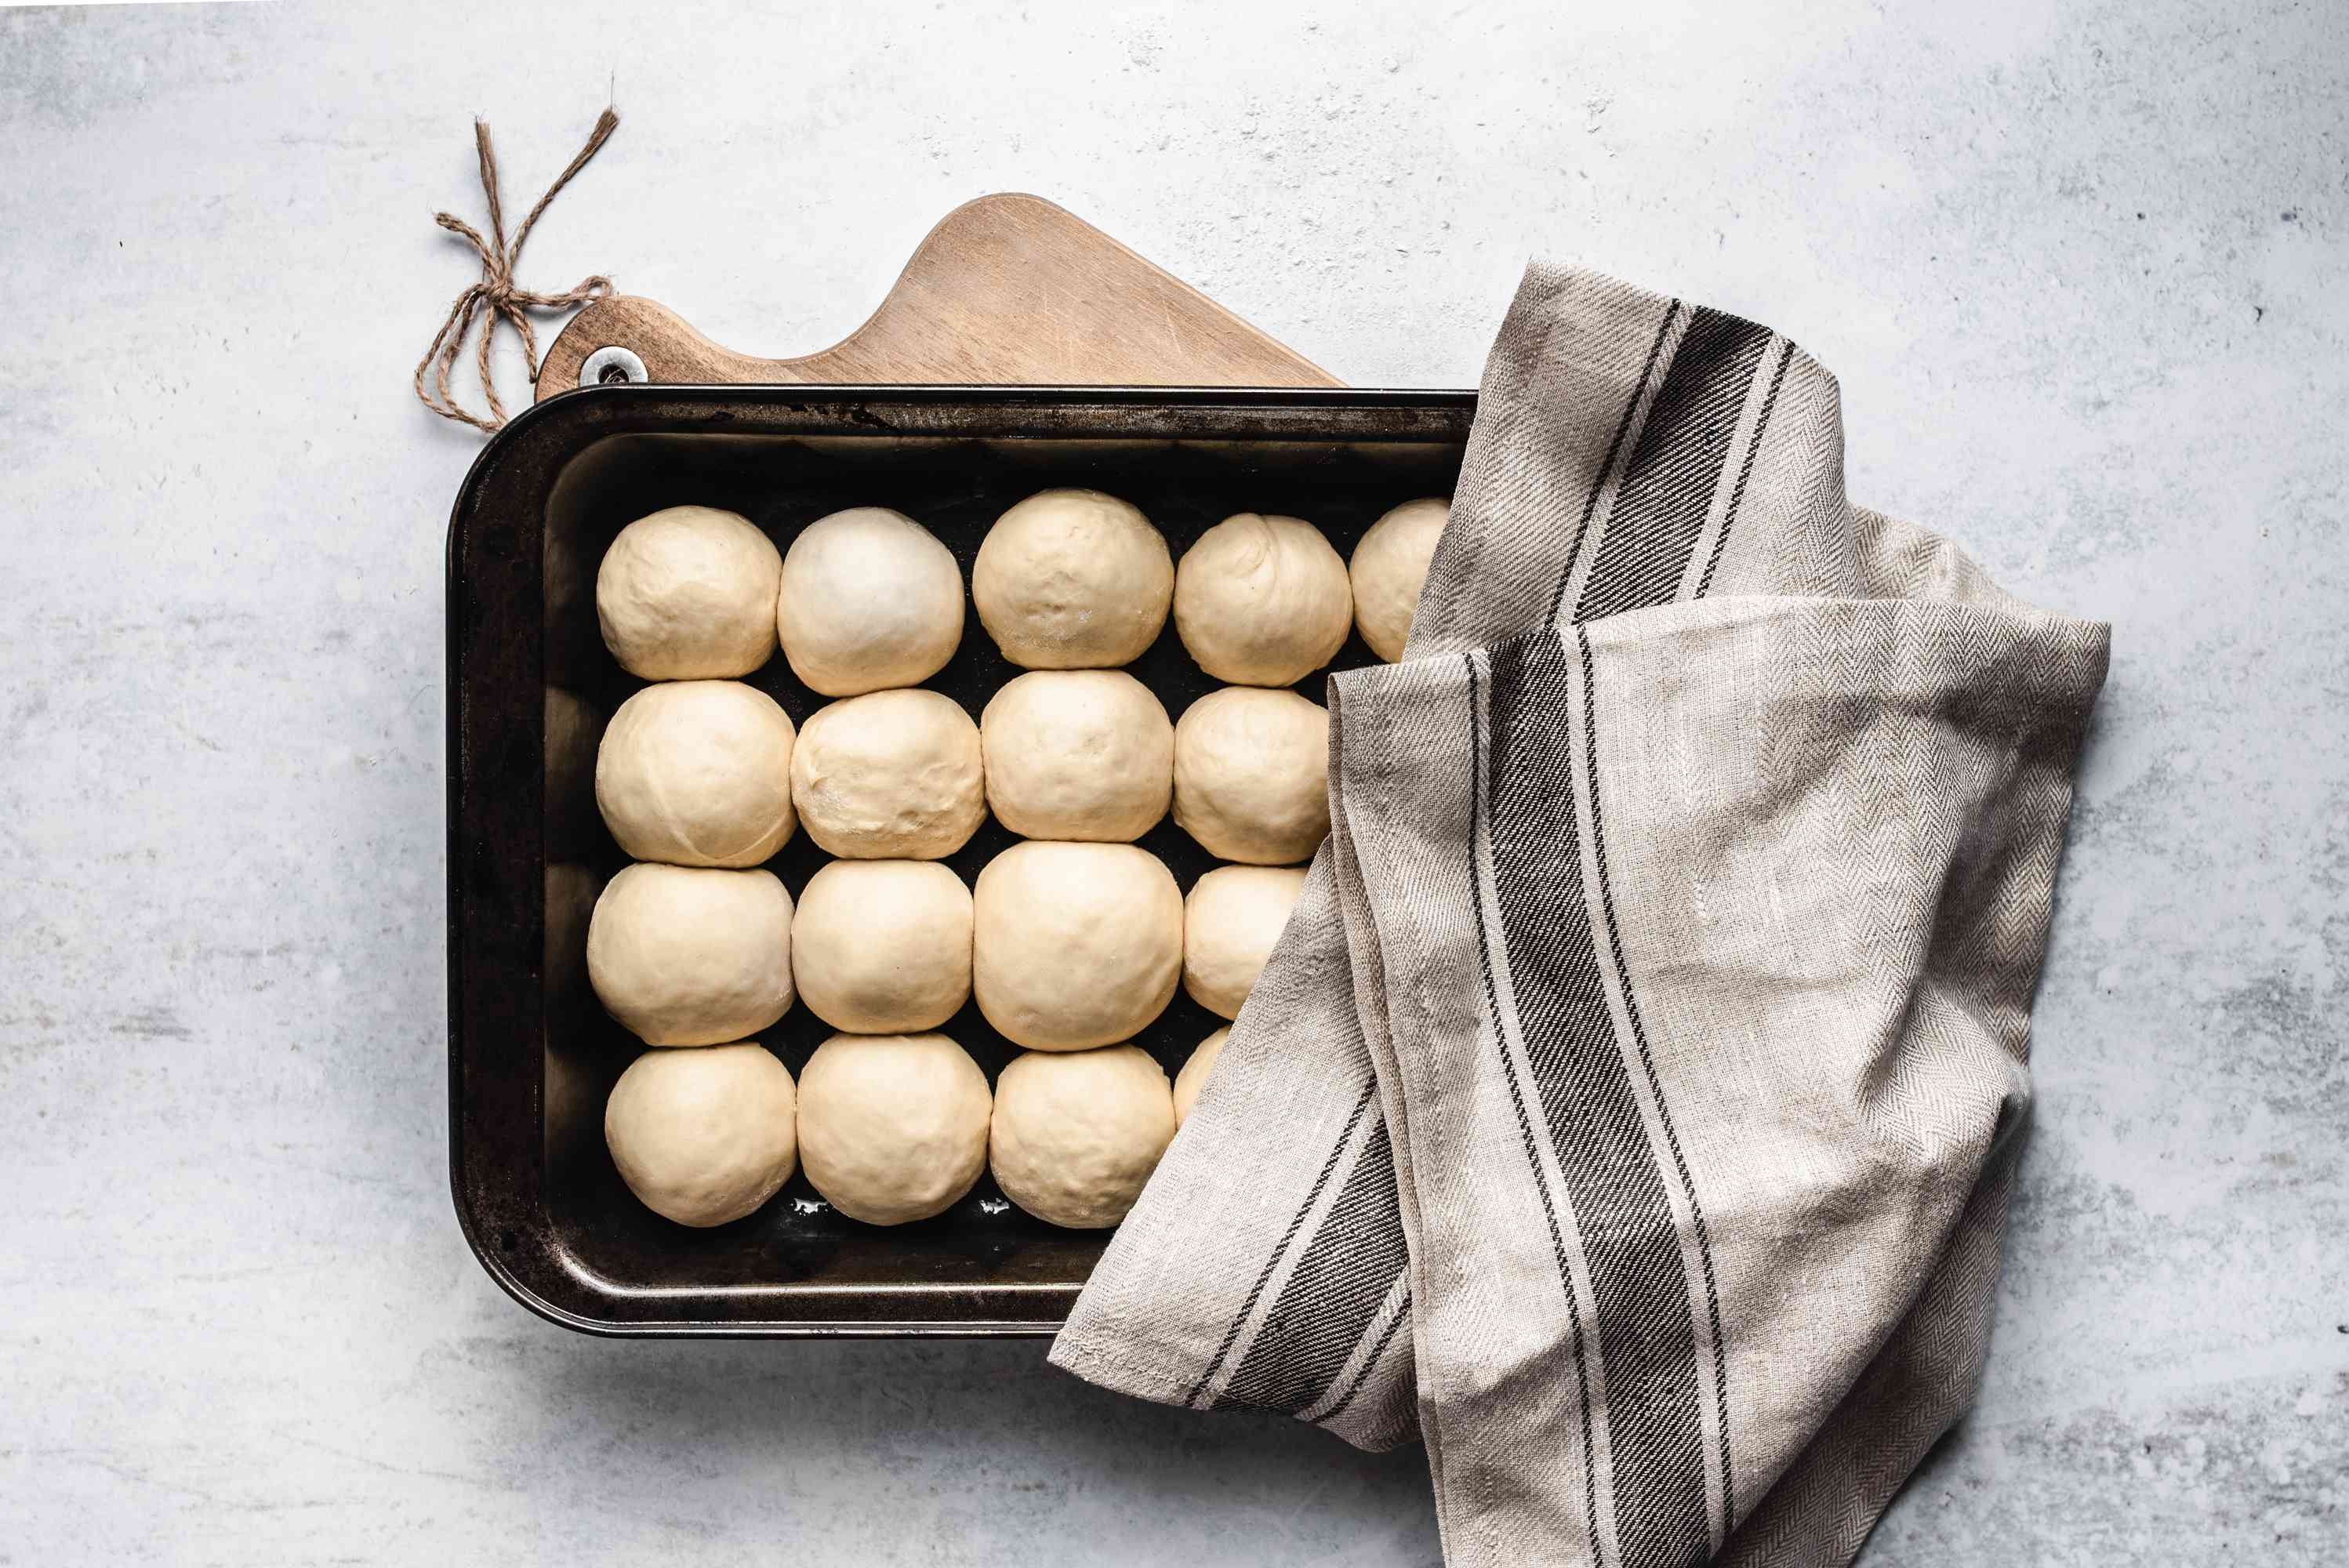 Balls of dough in baking pan covered with a towel